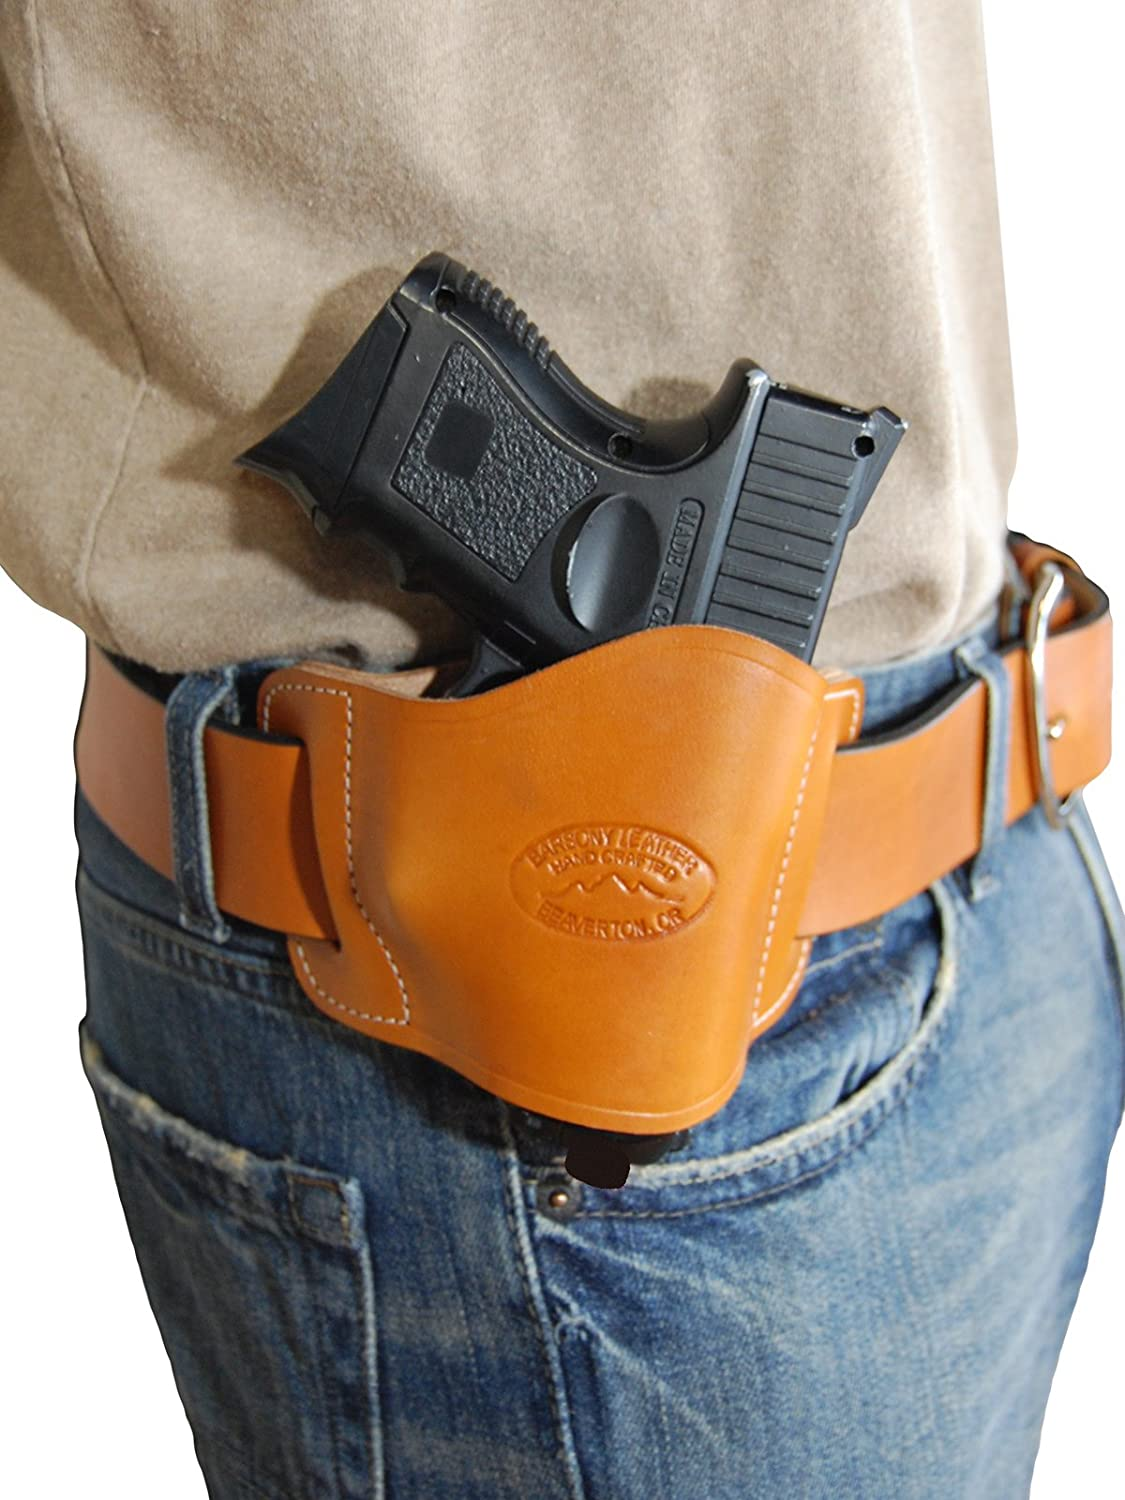 Barsony New Quick Slide Gun OWB Saddle Tan Leather Holster for Compact 9mm 40 45 Pistols